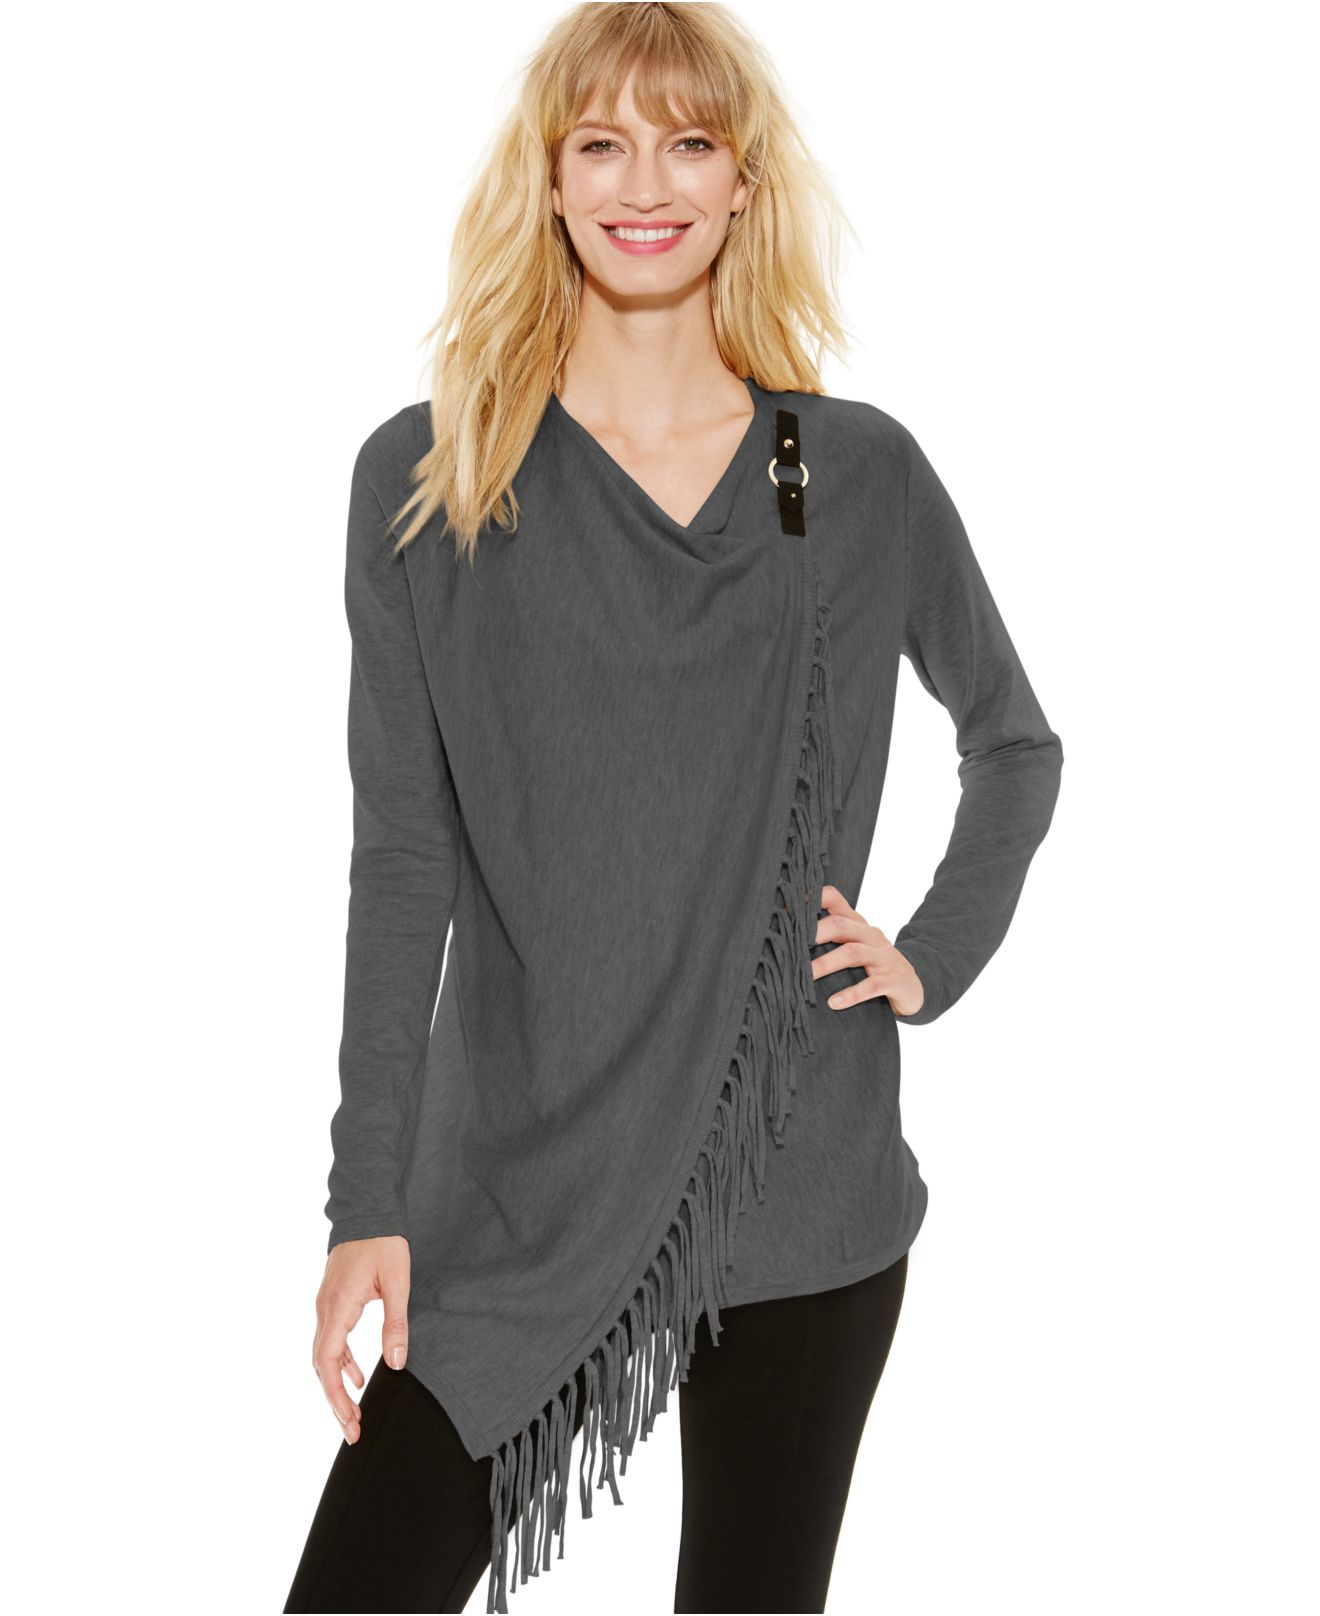 Inc international concepts Fringe Wrap Cardigan in Gray | Lyst